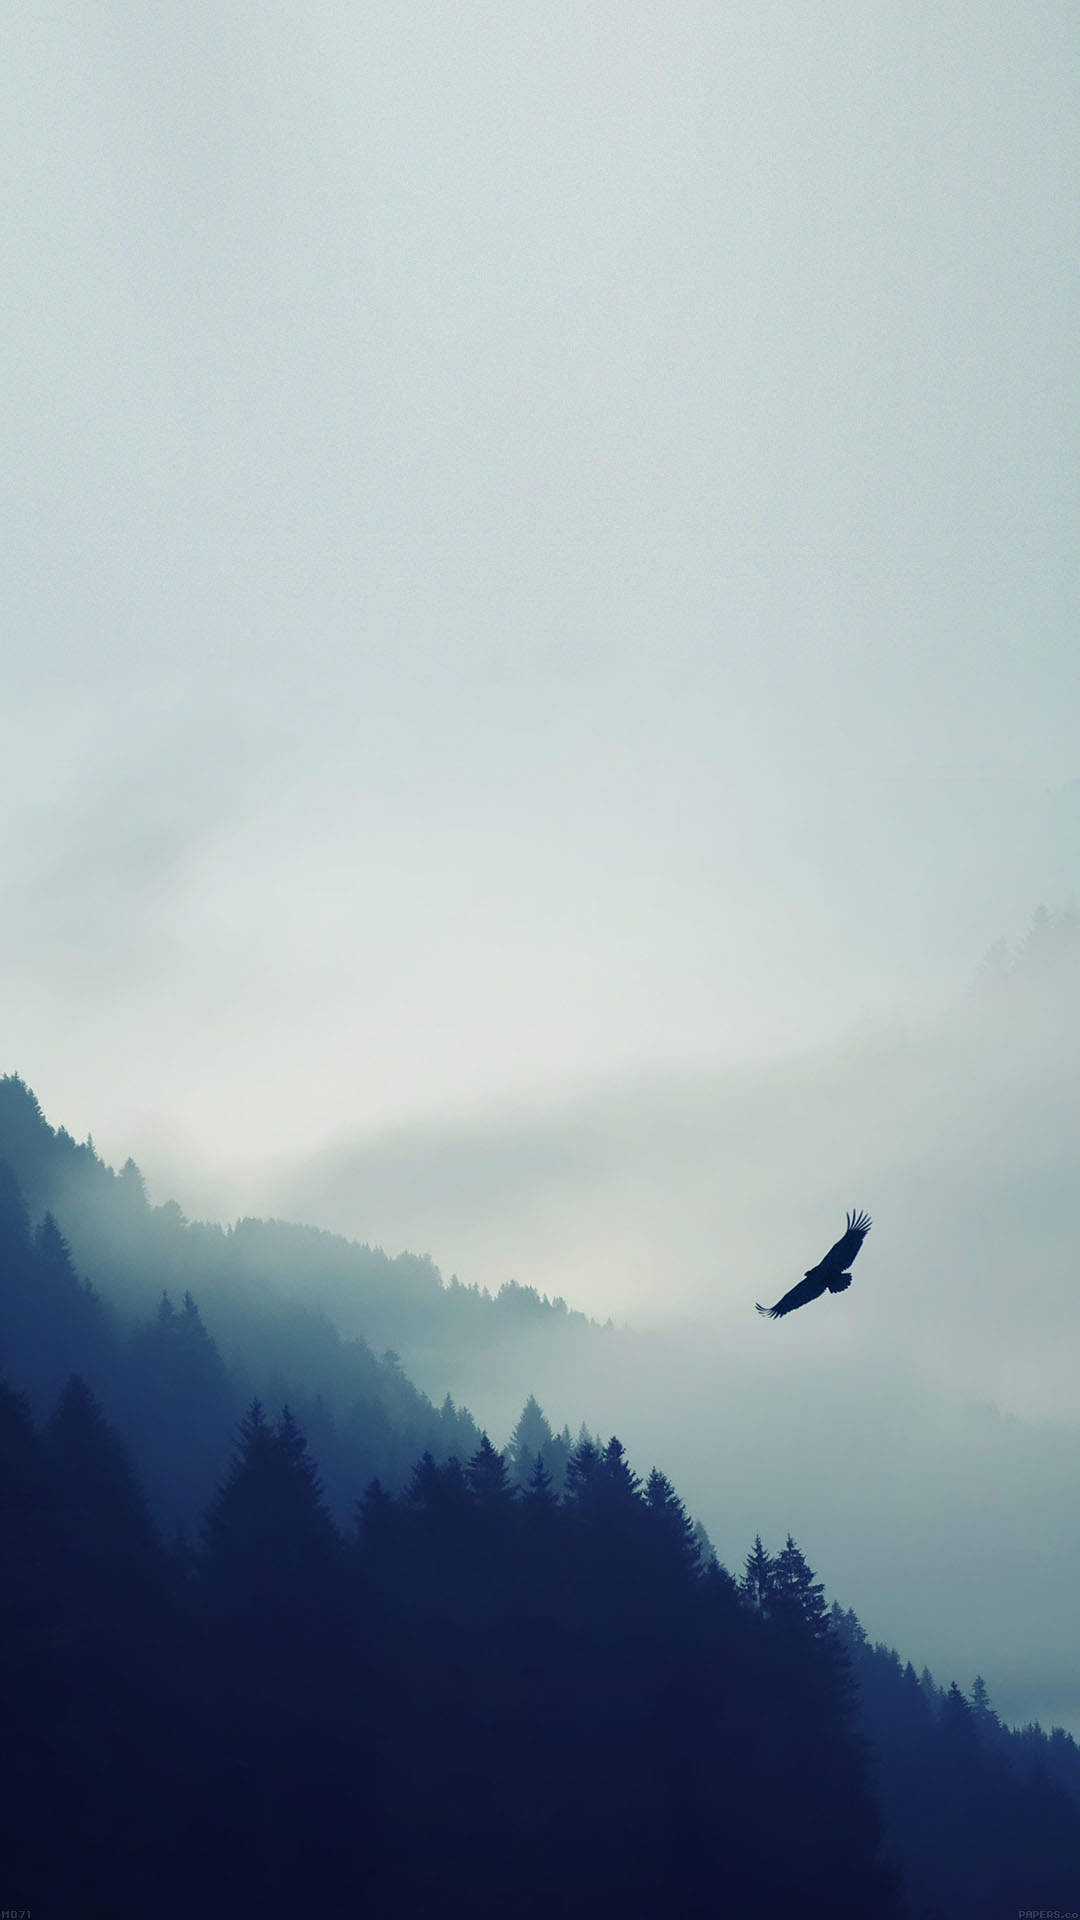 Eagle-mountain-blue-sky-High-quality-htc-one-and-abstract-backgrounds-designed-by-the-b-wallpaper-wp4605579